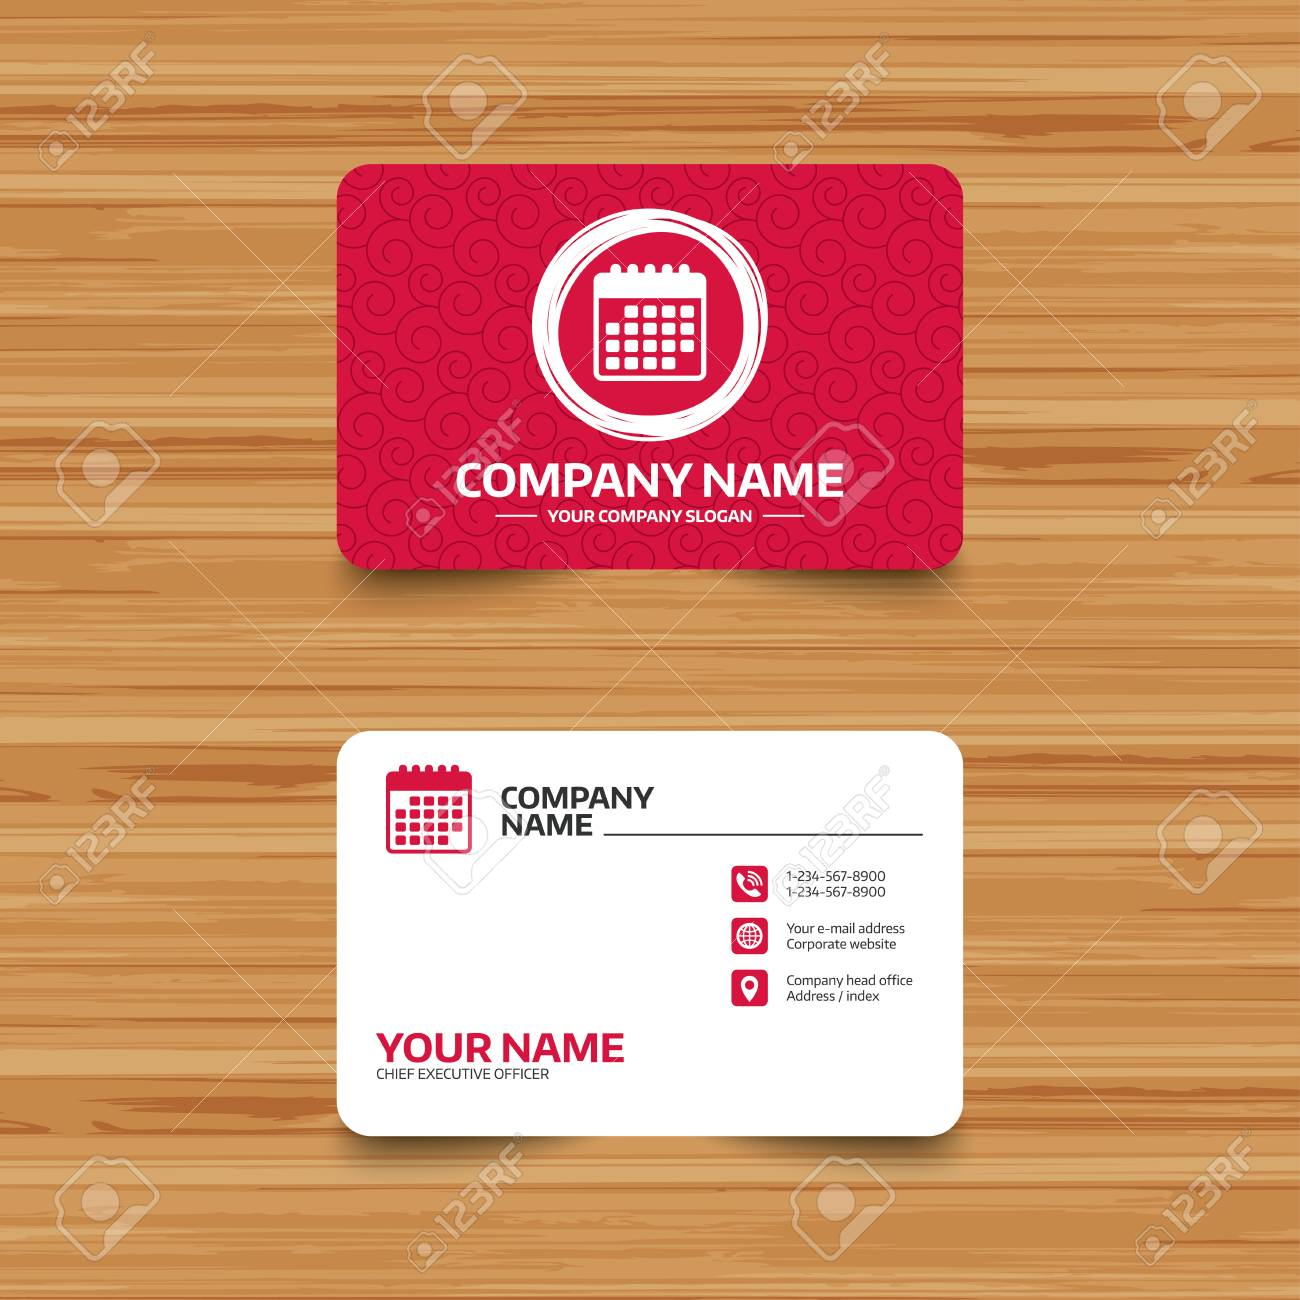 Business card template with texture calendar icon event reminder business card template with texture calendar icon event reminder symbol phone web accmission Image collections